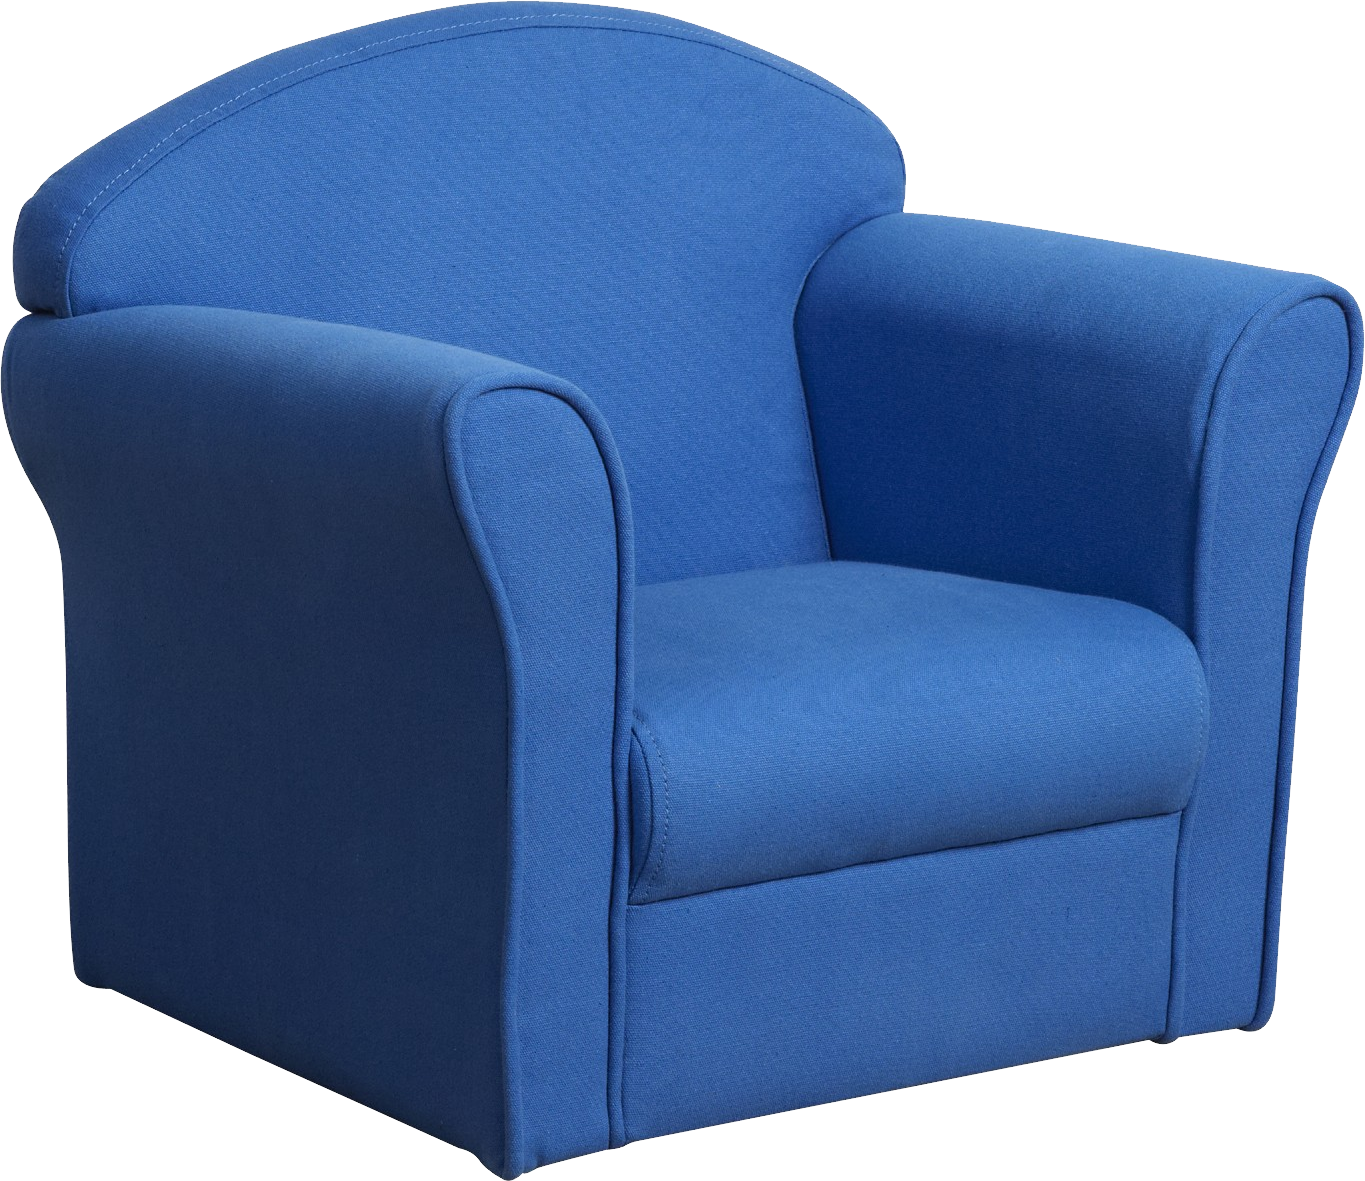 Armchair Armchair Sofa Chair Design